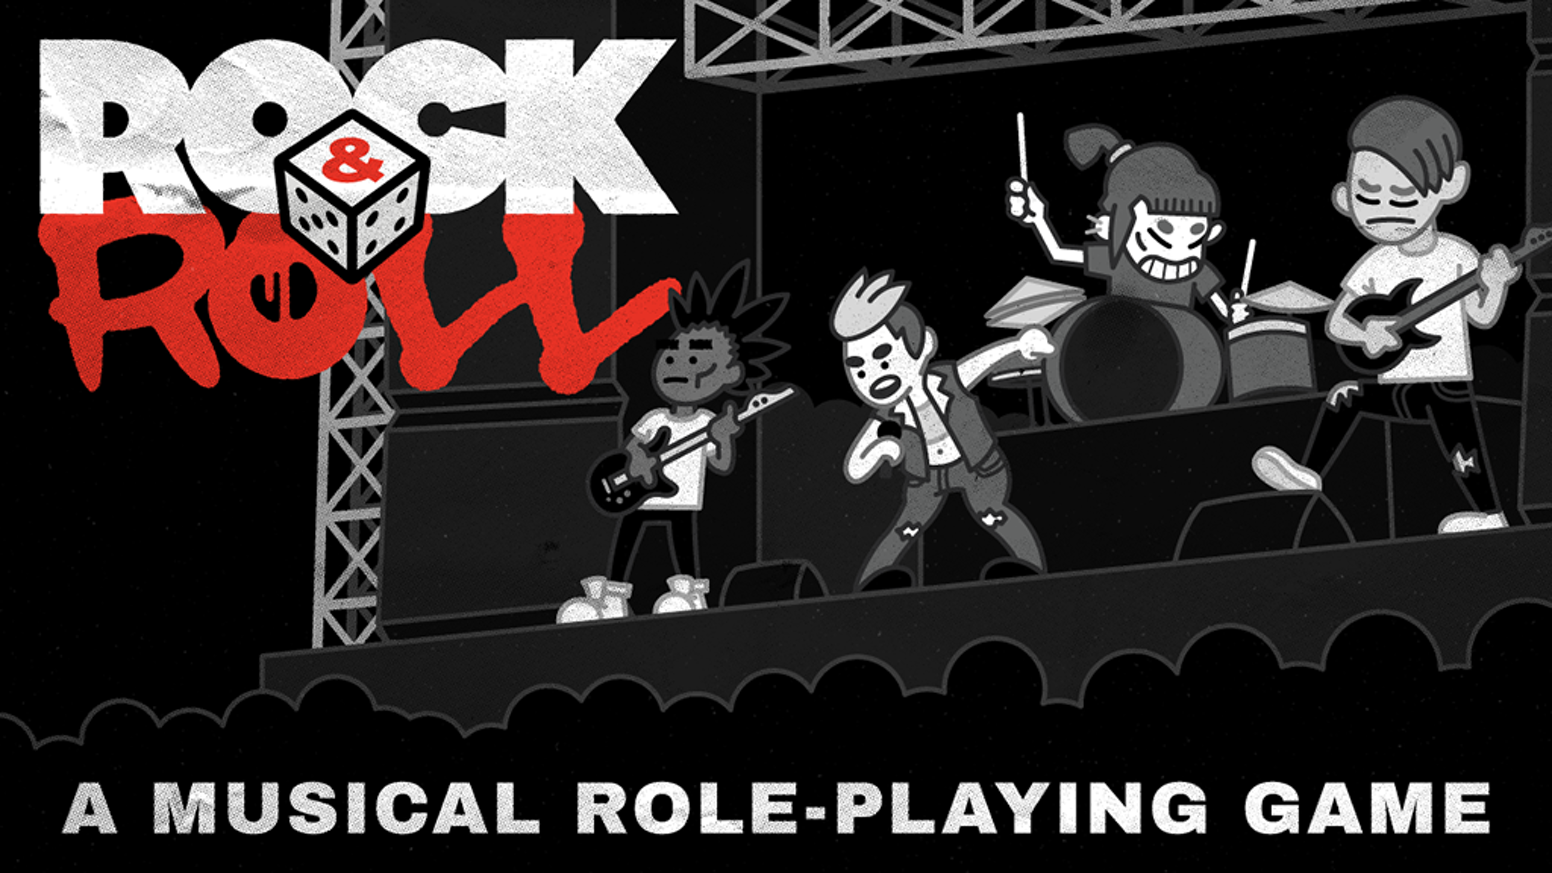 A tabletop role-playing game about making a band - play gigs, write jams, and get in the van.